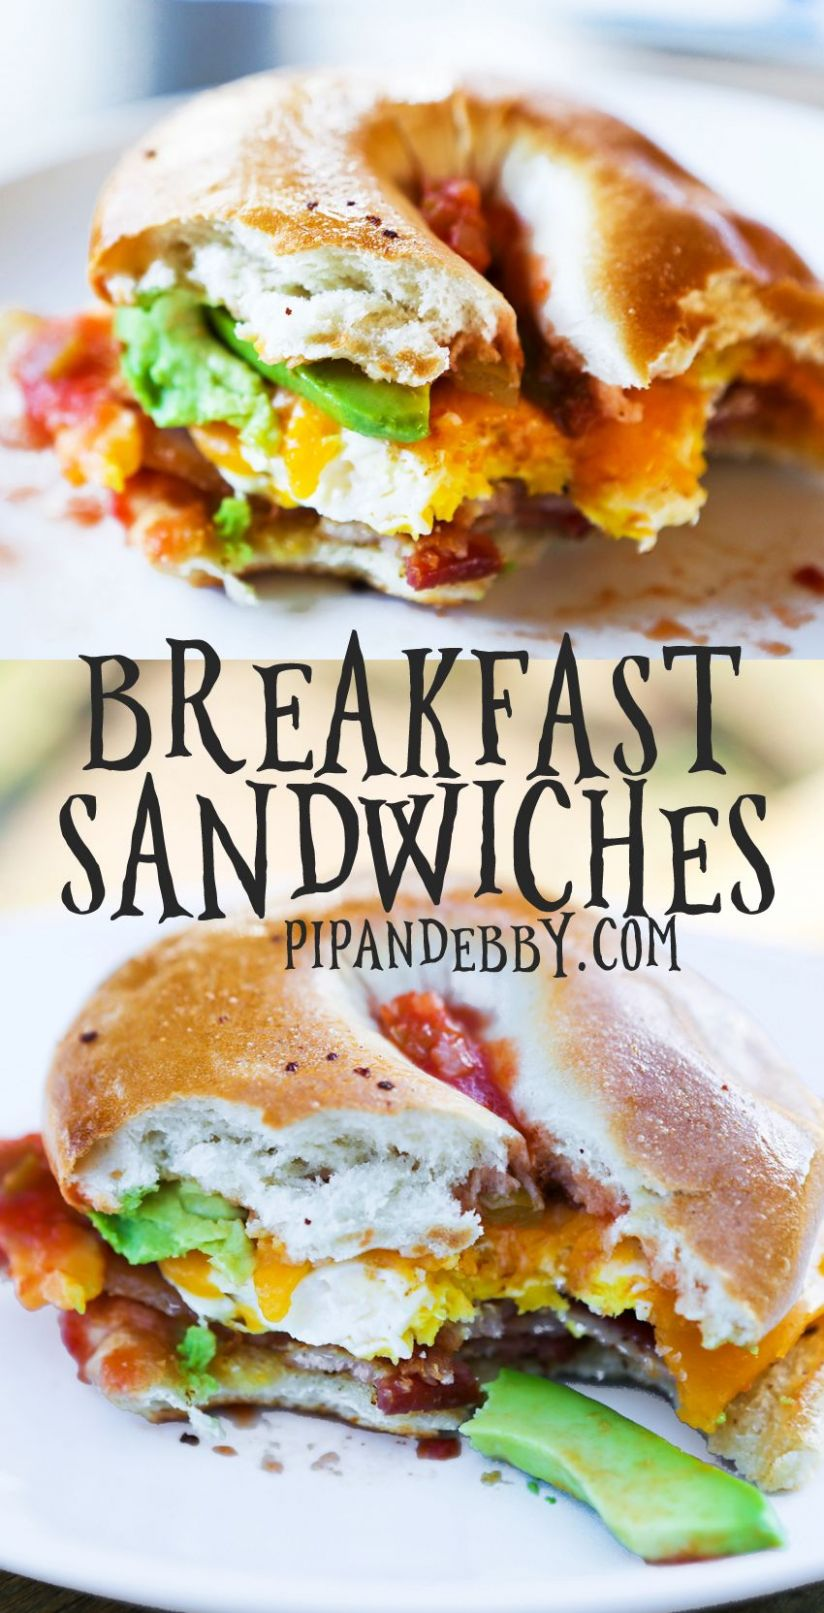 Loaded Bagel Breakfast Sandwiches - Breakfast Recipes Using Bagels